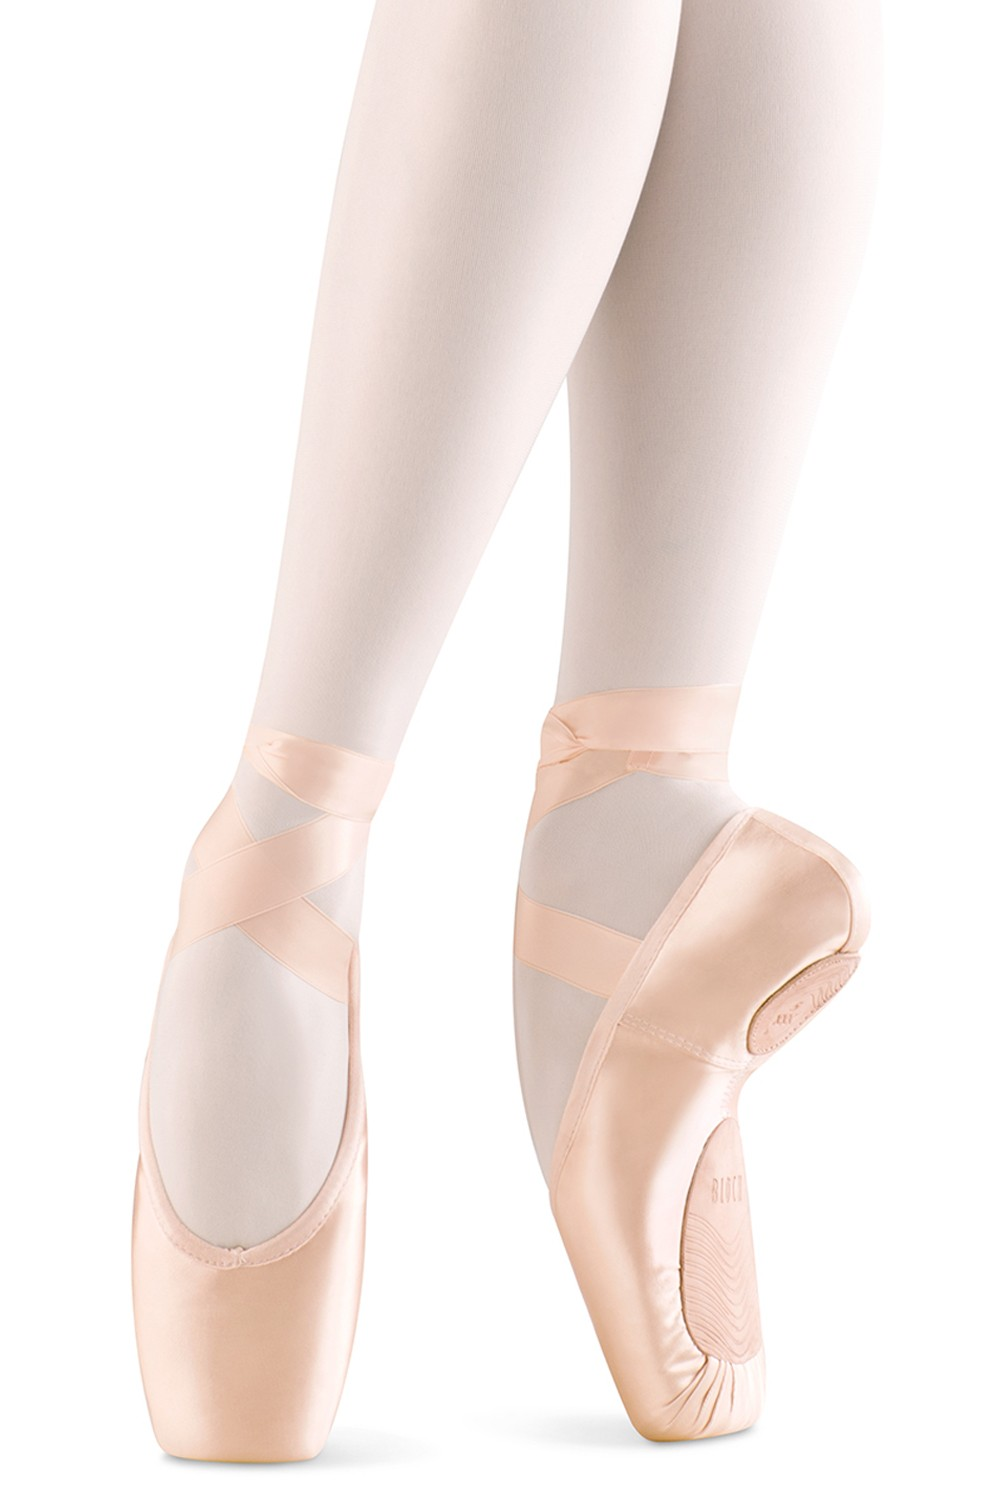 Shop for ballet boots on the official Sansha® online store. Get 10% discount when creating your account and free delivery on all orders of $60 and more!